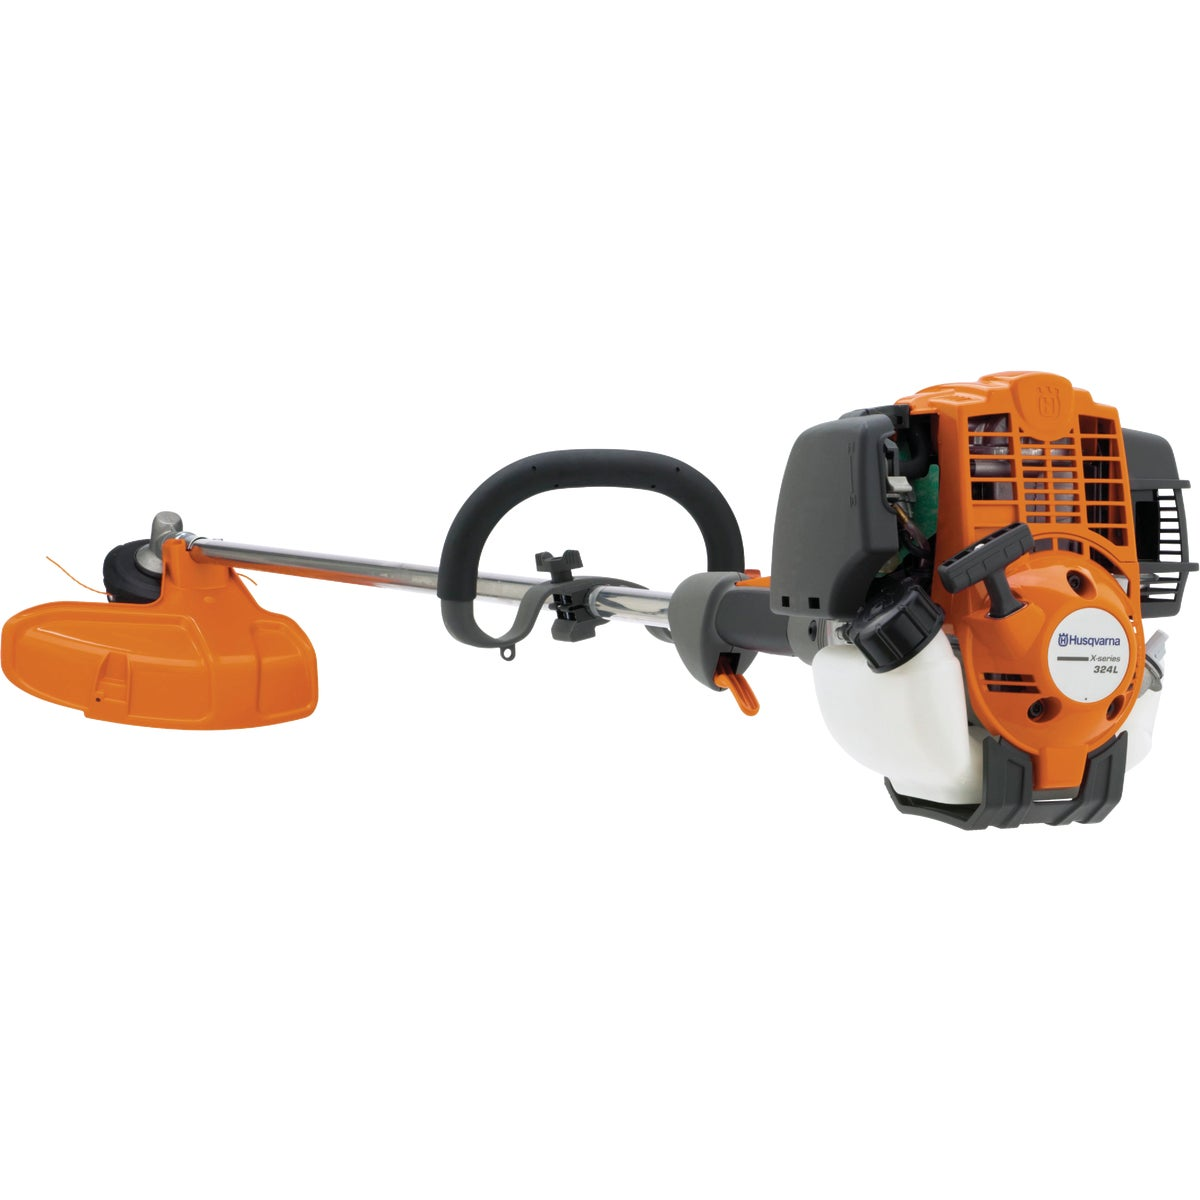 4-CYC GAS STRING TRIMMER - 965966702 by Husqvarna Outdoor